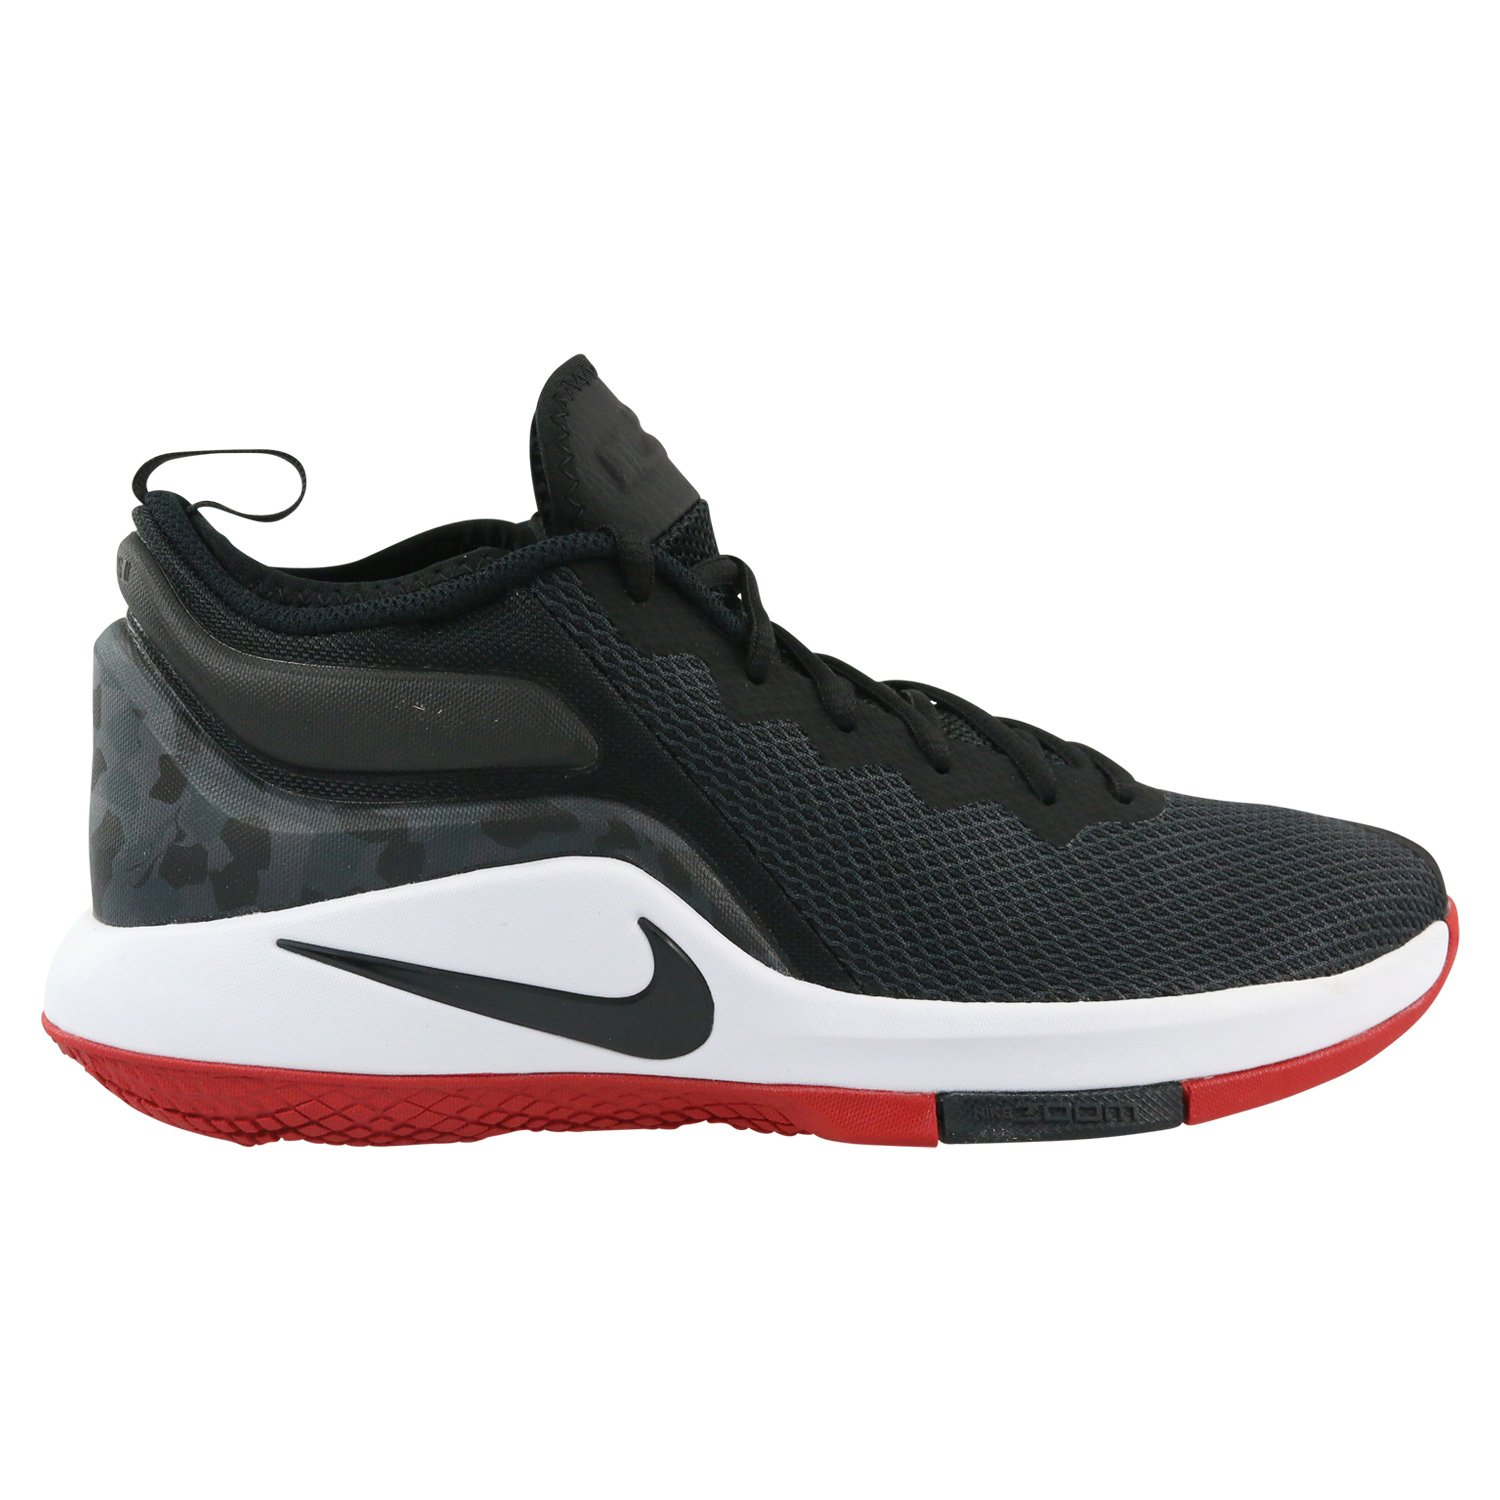 Nike Basketball Shoe Packs